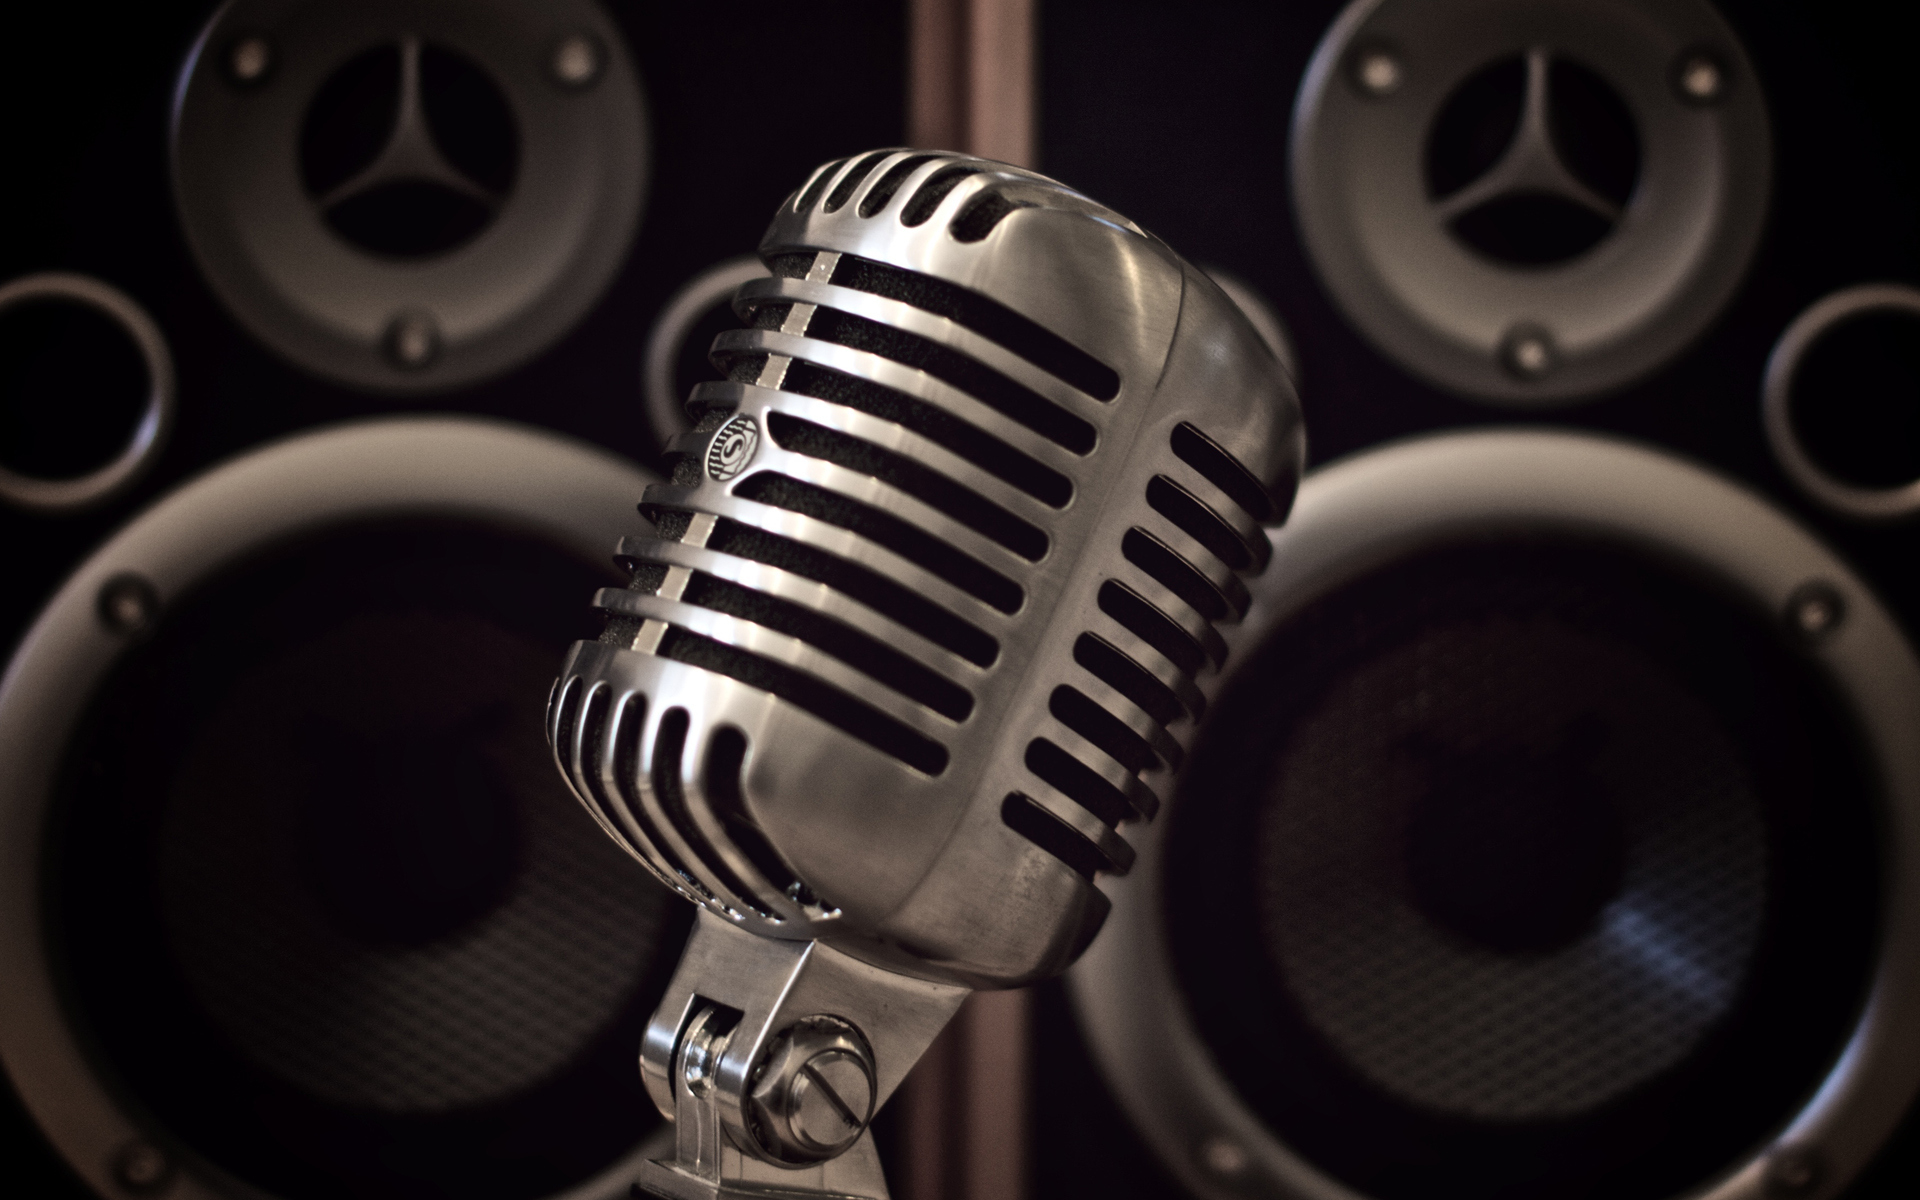 microphone_desktop_backgrounds-wide